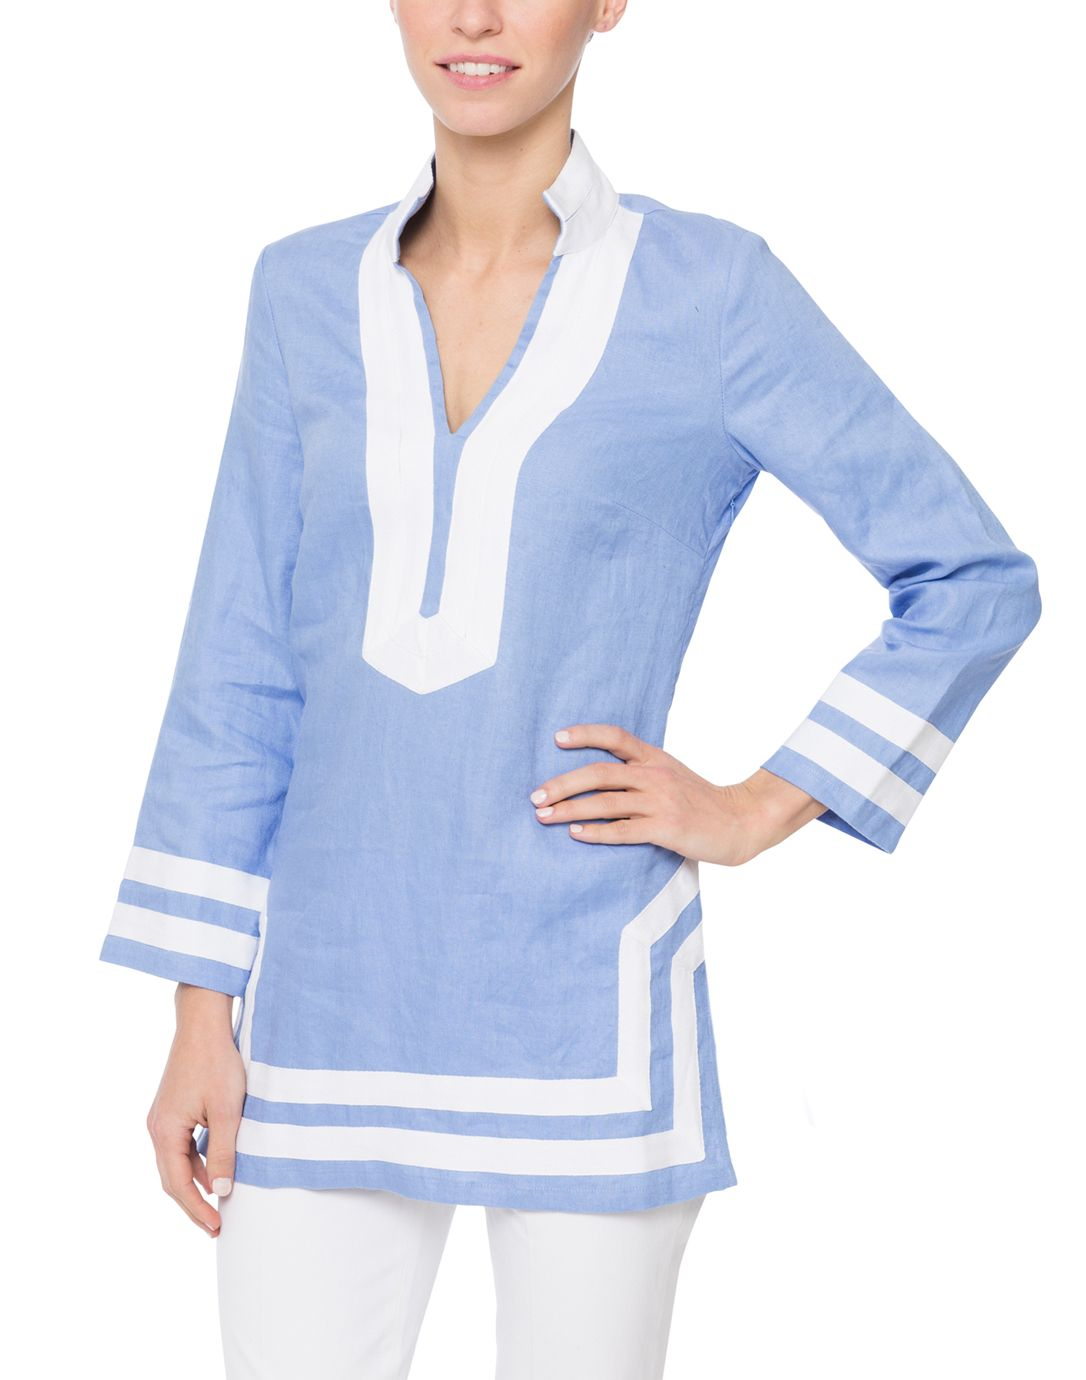 Sail to Sable created a special edition of their famous tunic especially for Halsbrook. The perfect pairing of hydrangea linen with white twill tape, this 100% linen tunic is your go-to classic staple piece for the resort season and beyond. Pair it with a pair of crisp white jeans and gold jewelry for the ultimate warm weather look. This timeless style is also a great gifting option for the holiday season.